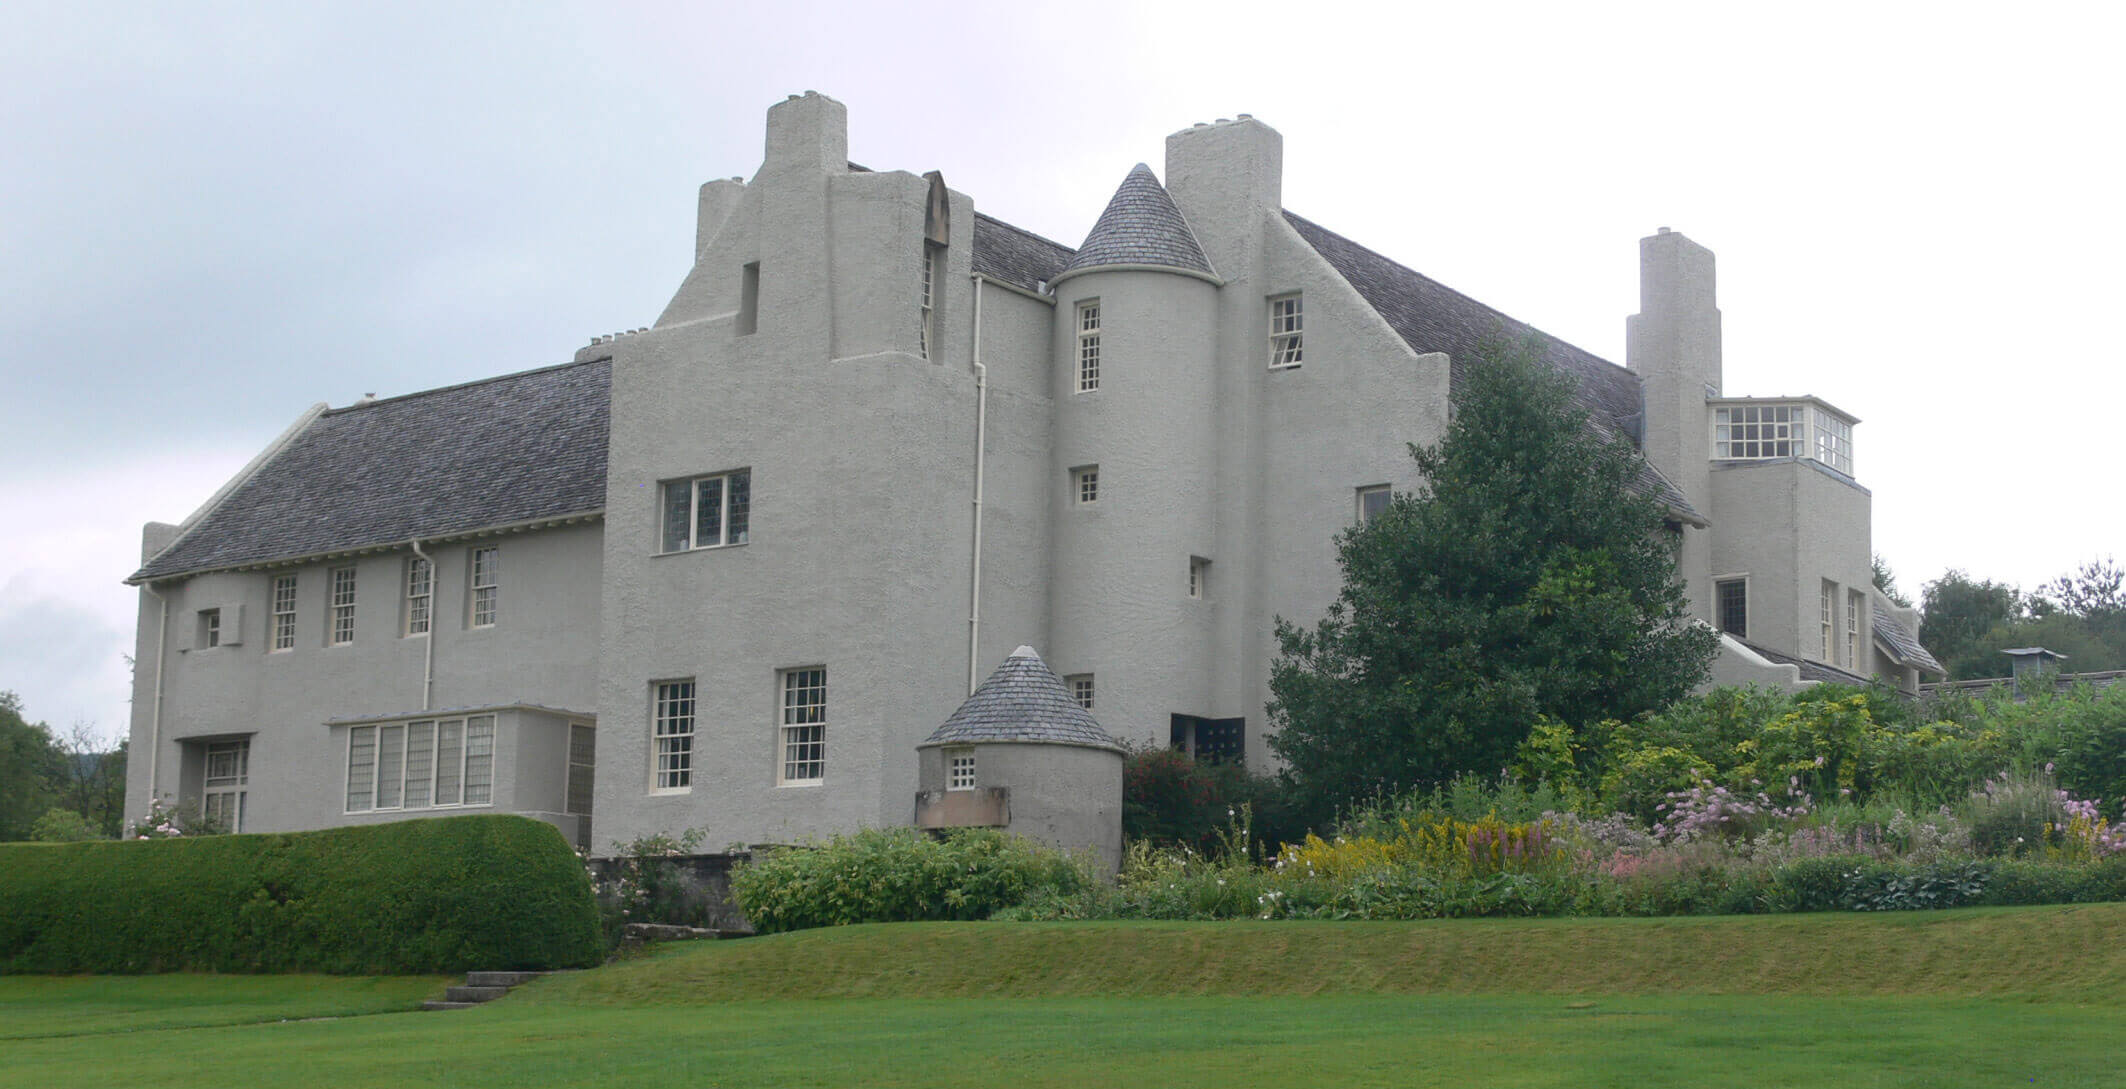 Hill House in Helensburg, Schottland, Charles Rennie Mackintosh